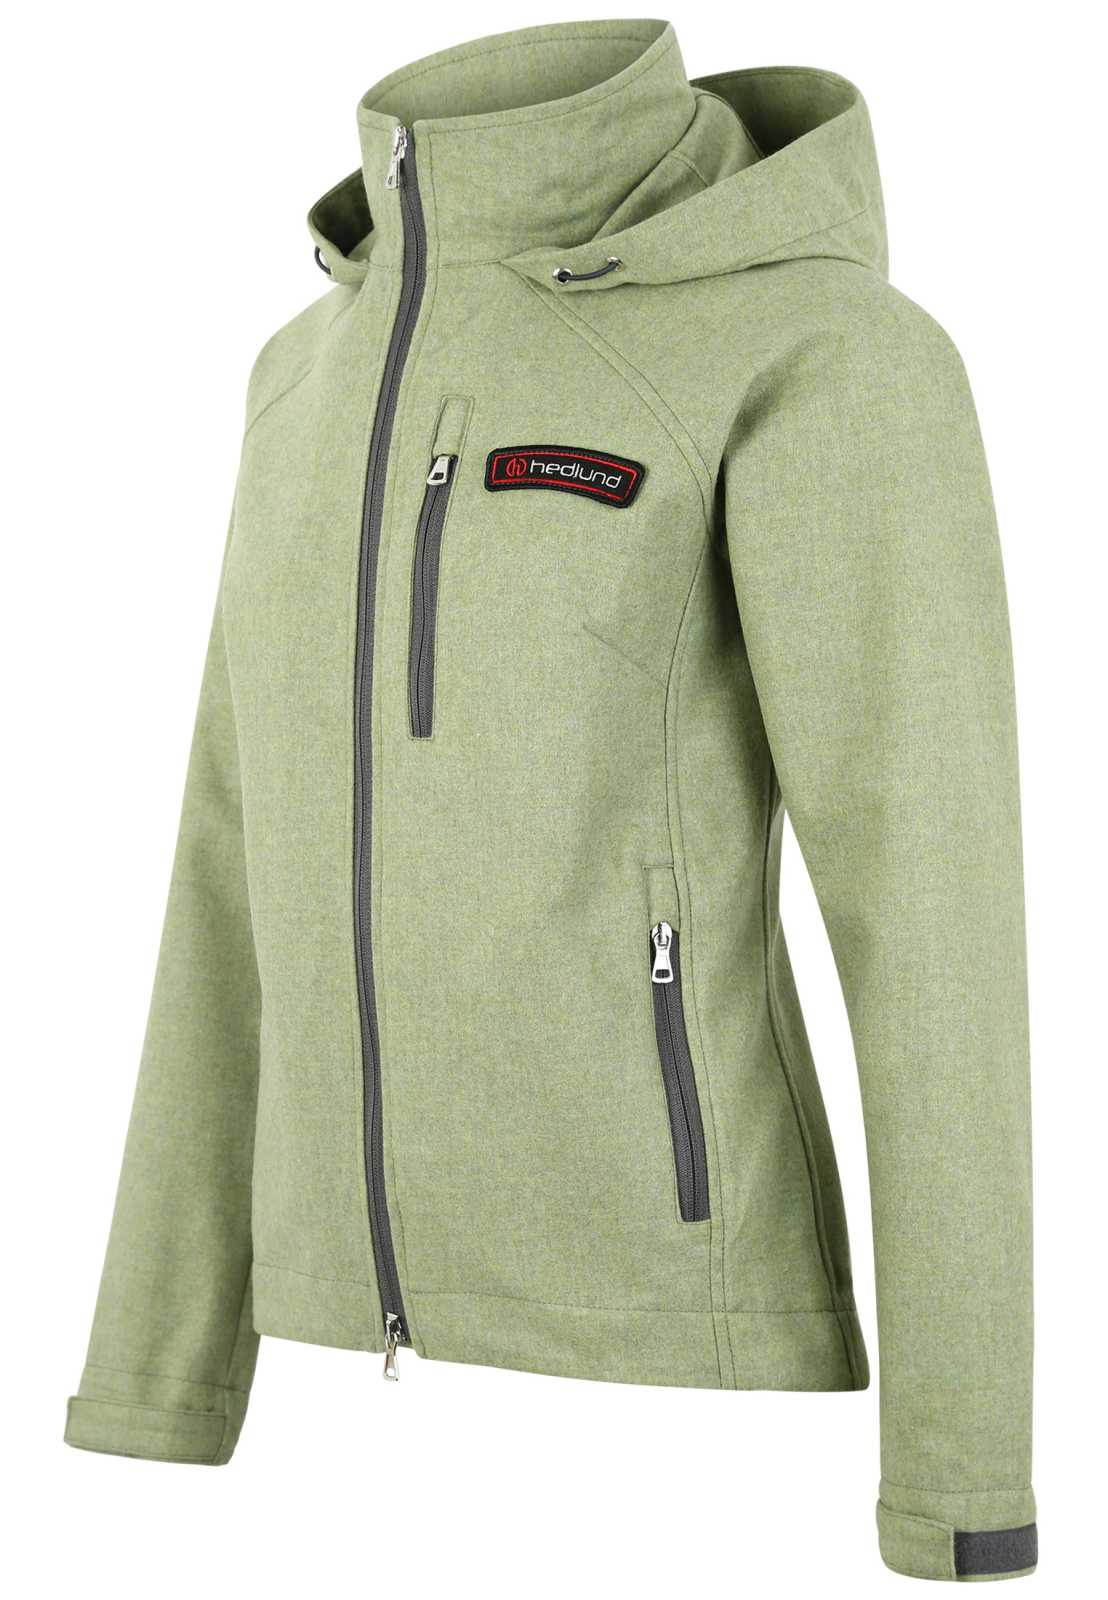 hedlund Damen Windbreaker gilja light soft green Merinowolle